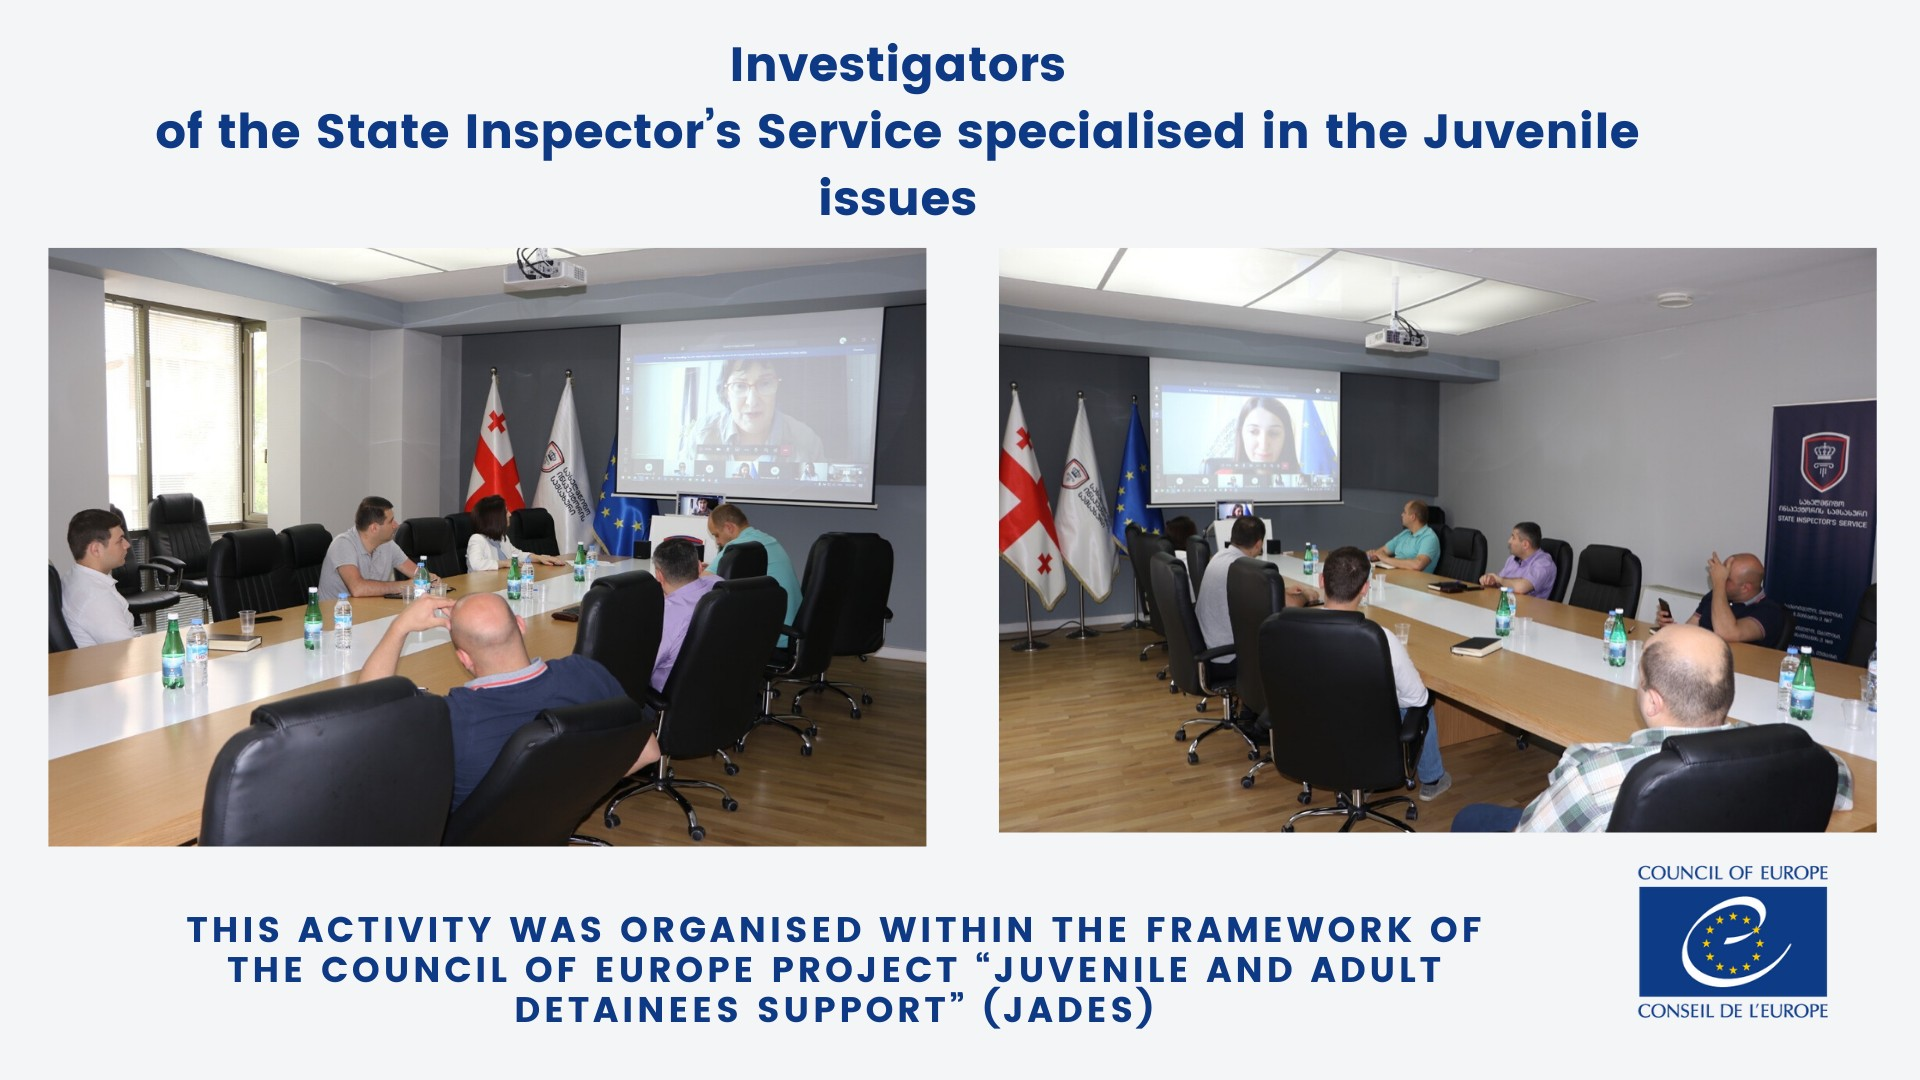 Investigators of the State Inspector's Service specialised in the Juvenile issues